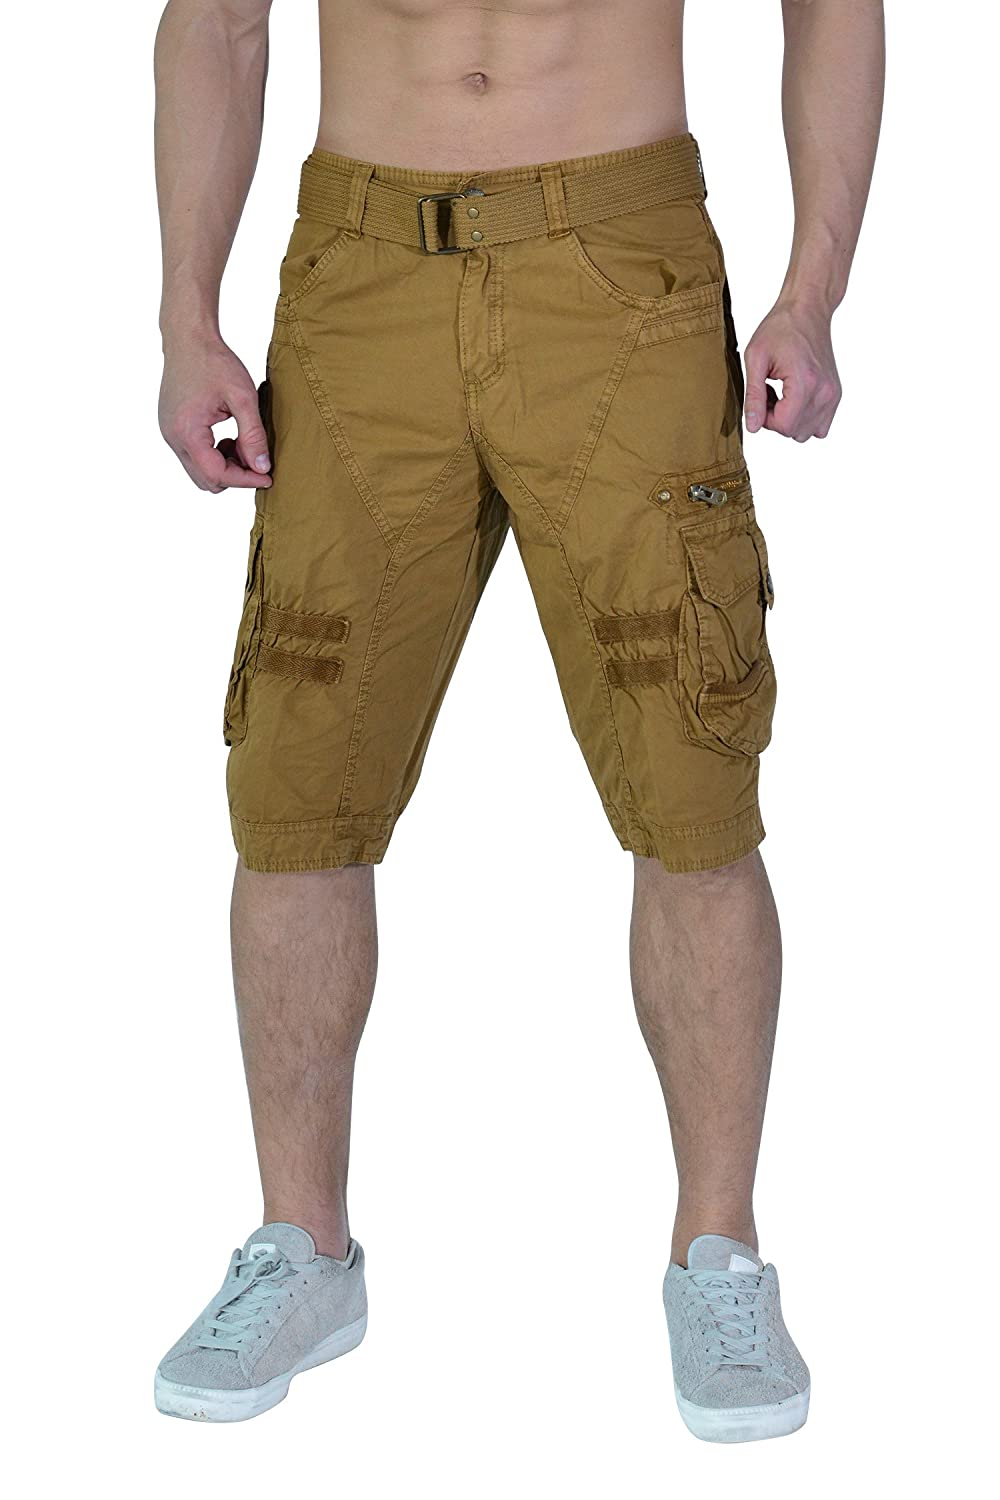 TWO BLOCKS OFF Cargo Shorts for Mens, Rib Waist/Multi Pocket,Leg Straight & Loose Fit CargoShorts18#2